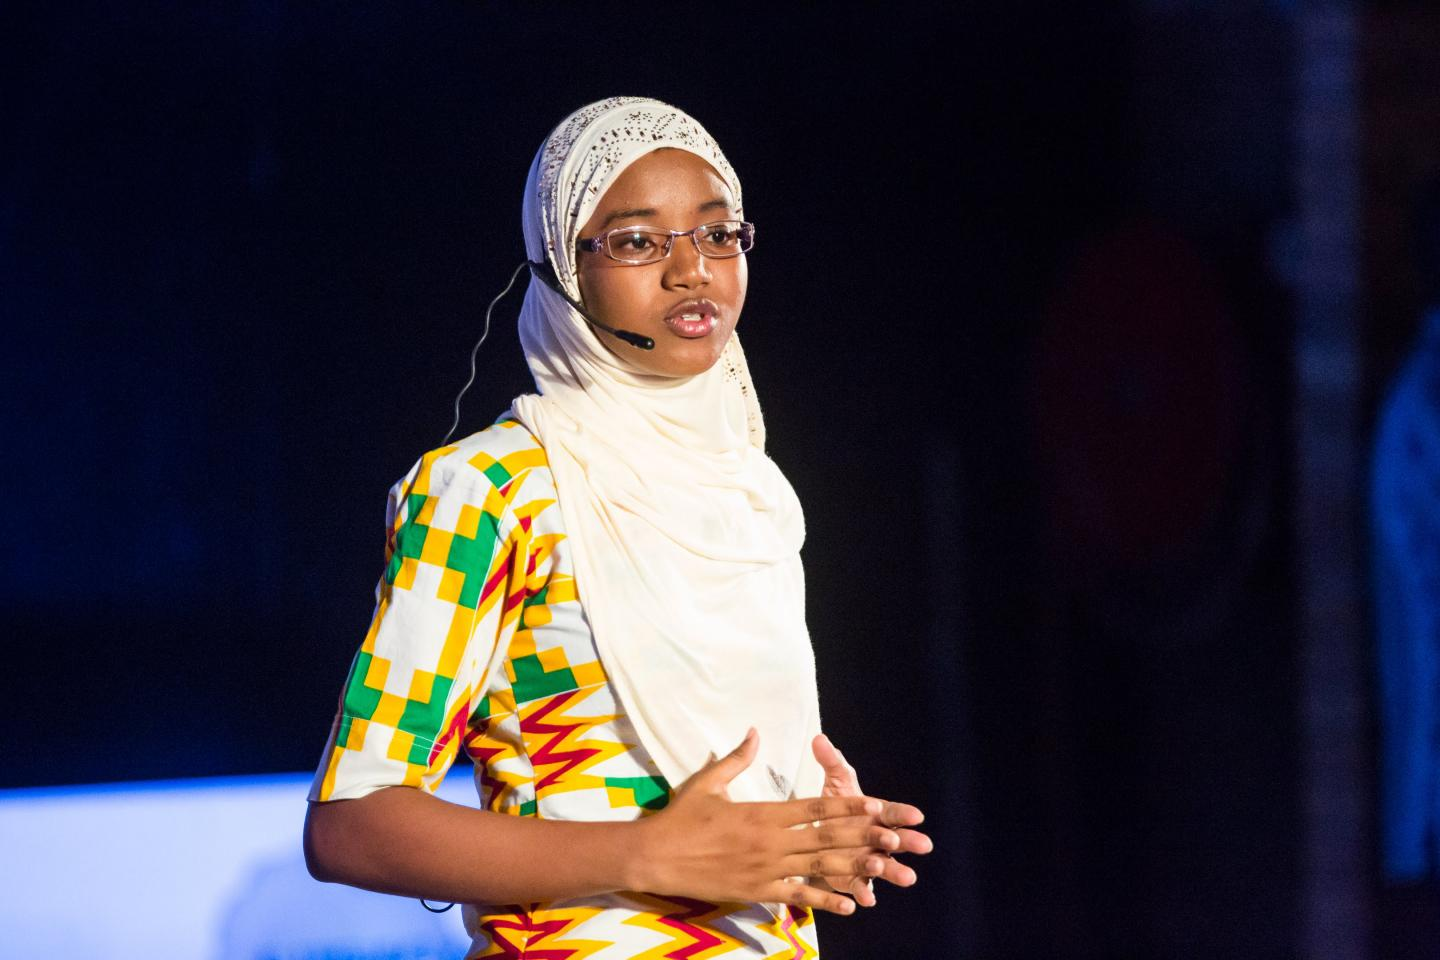 African adolescents tell the world about the Africa They Want